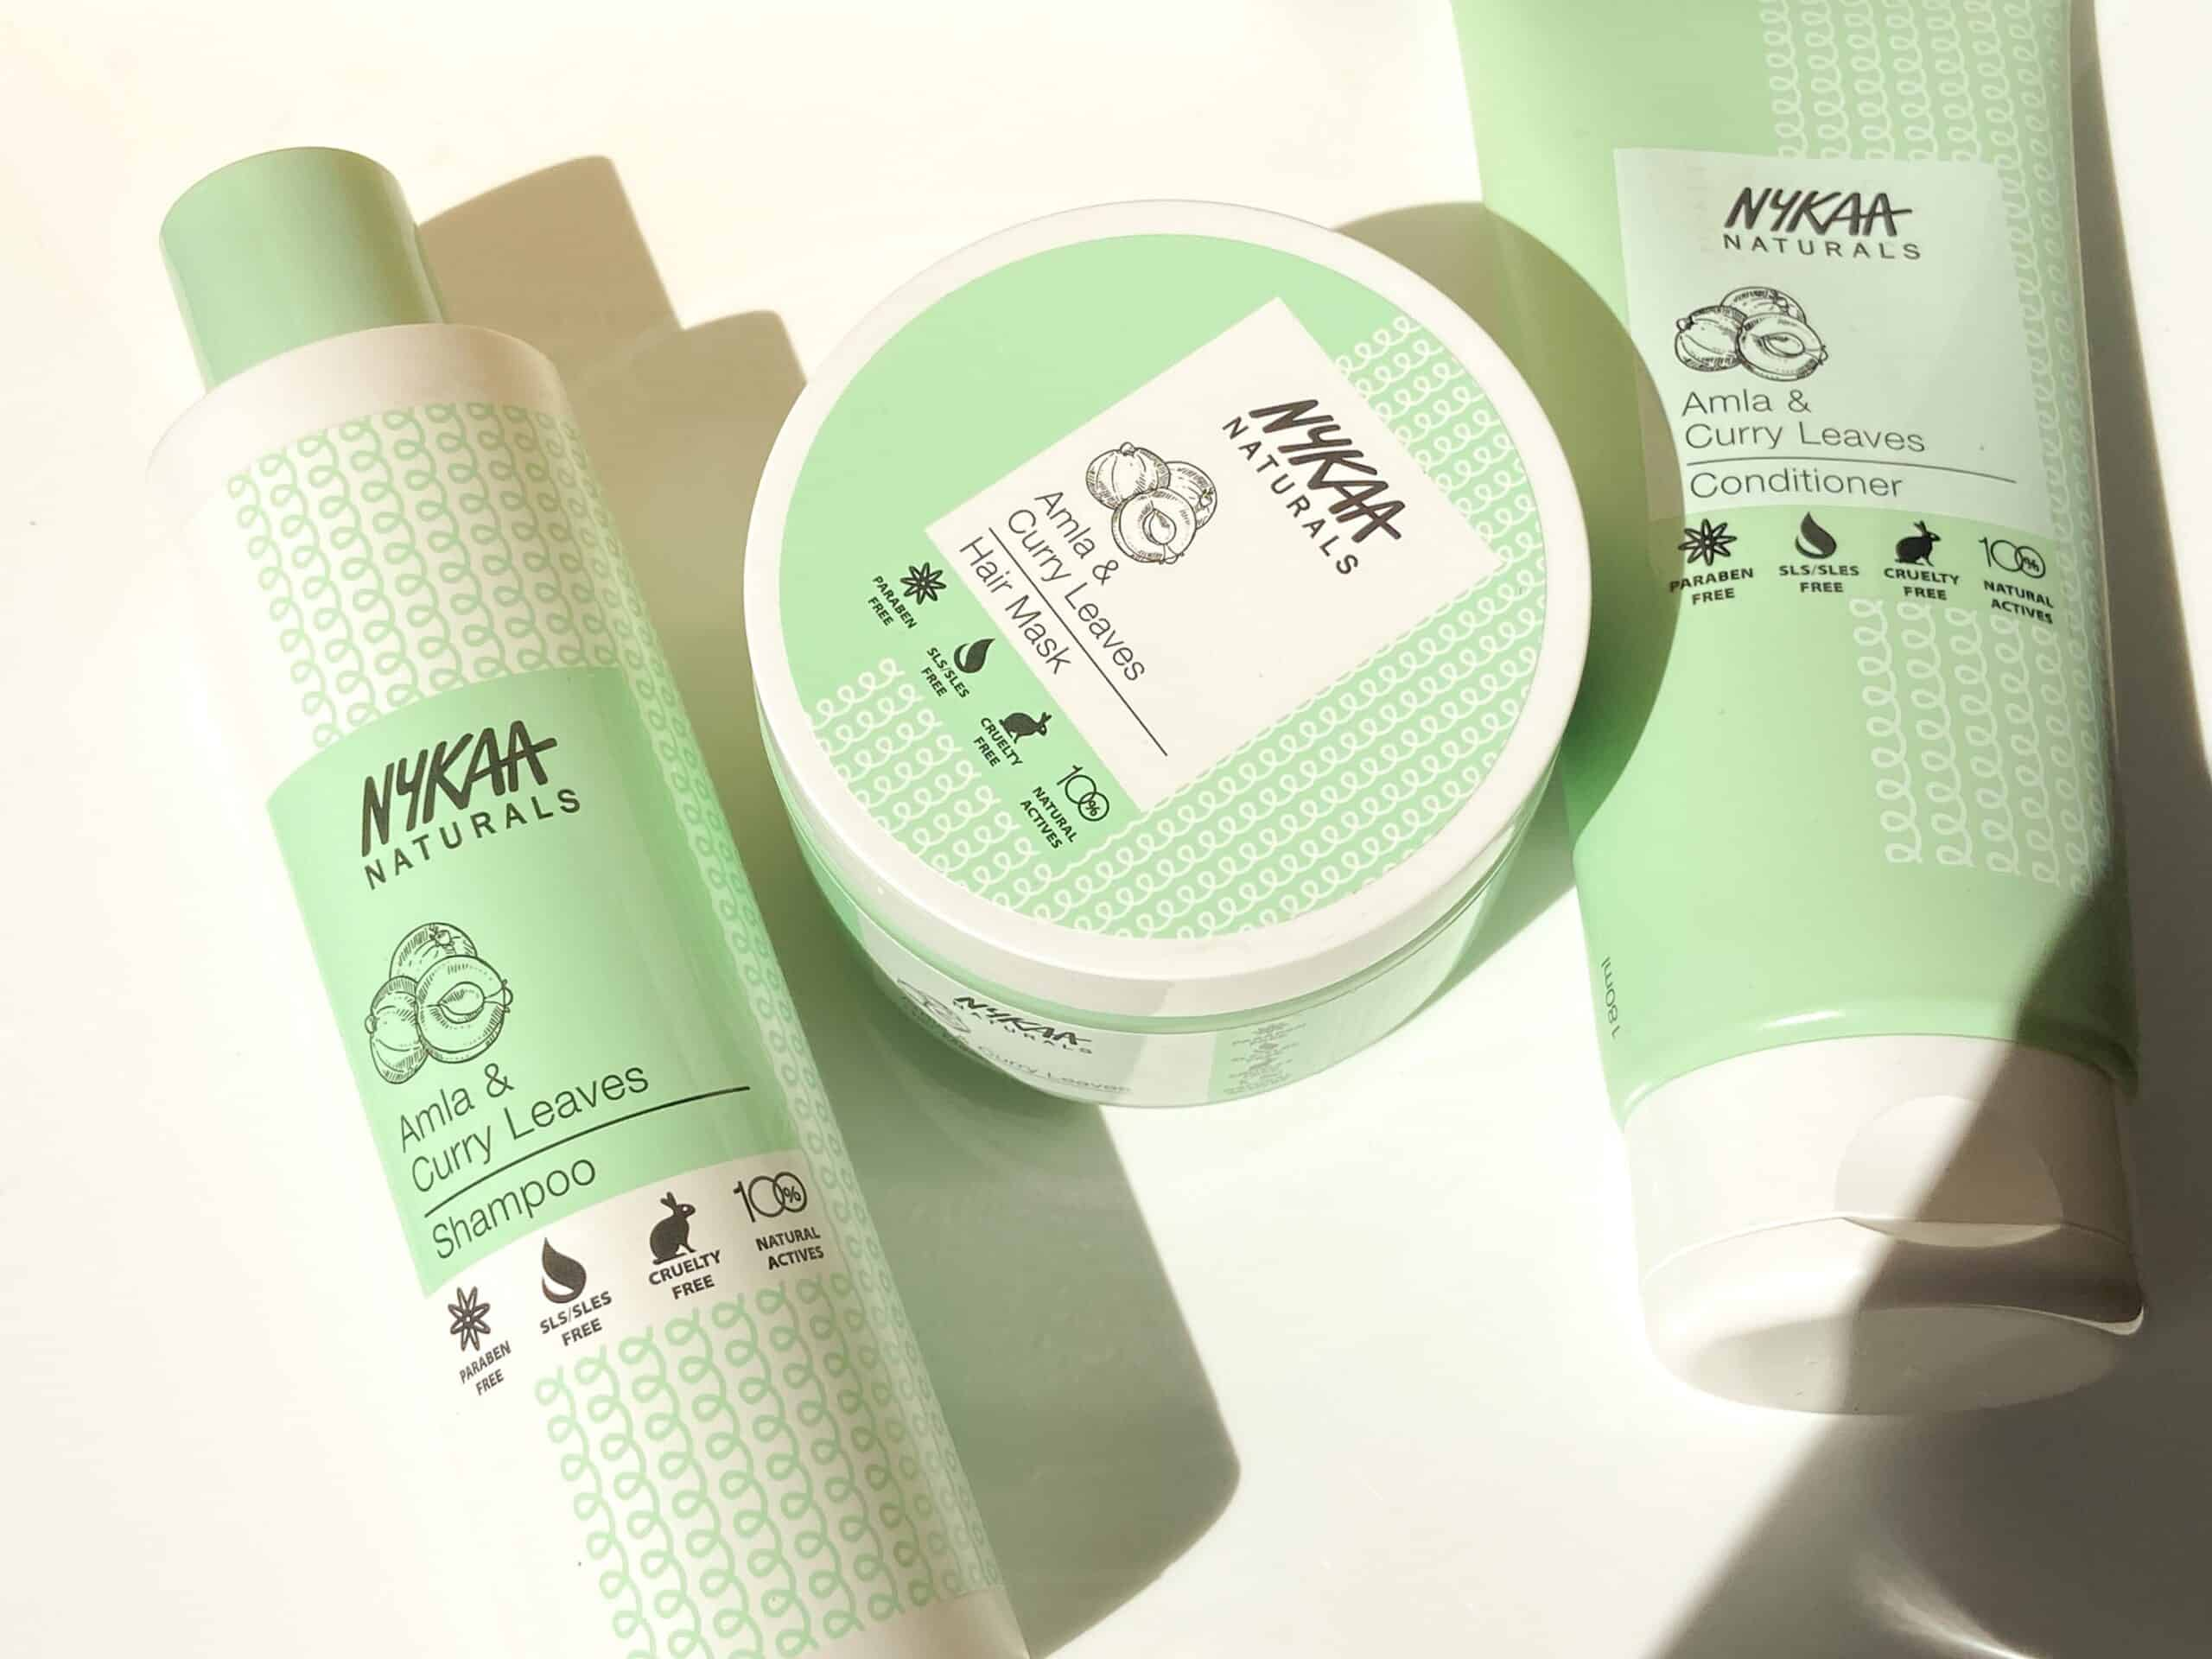 Nykaa Naturals Amla and Curry Leaves Haircare Review scaled